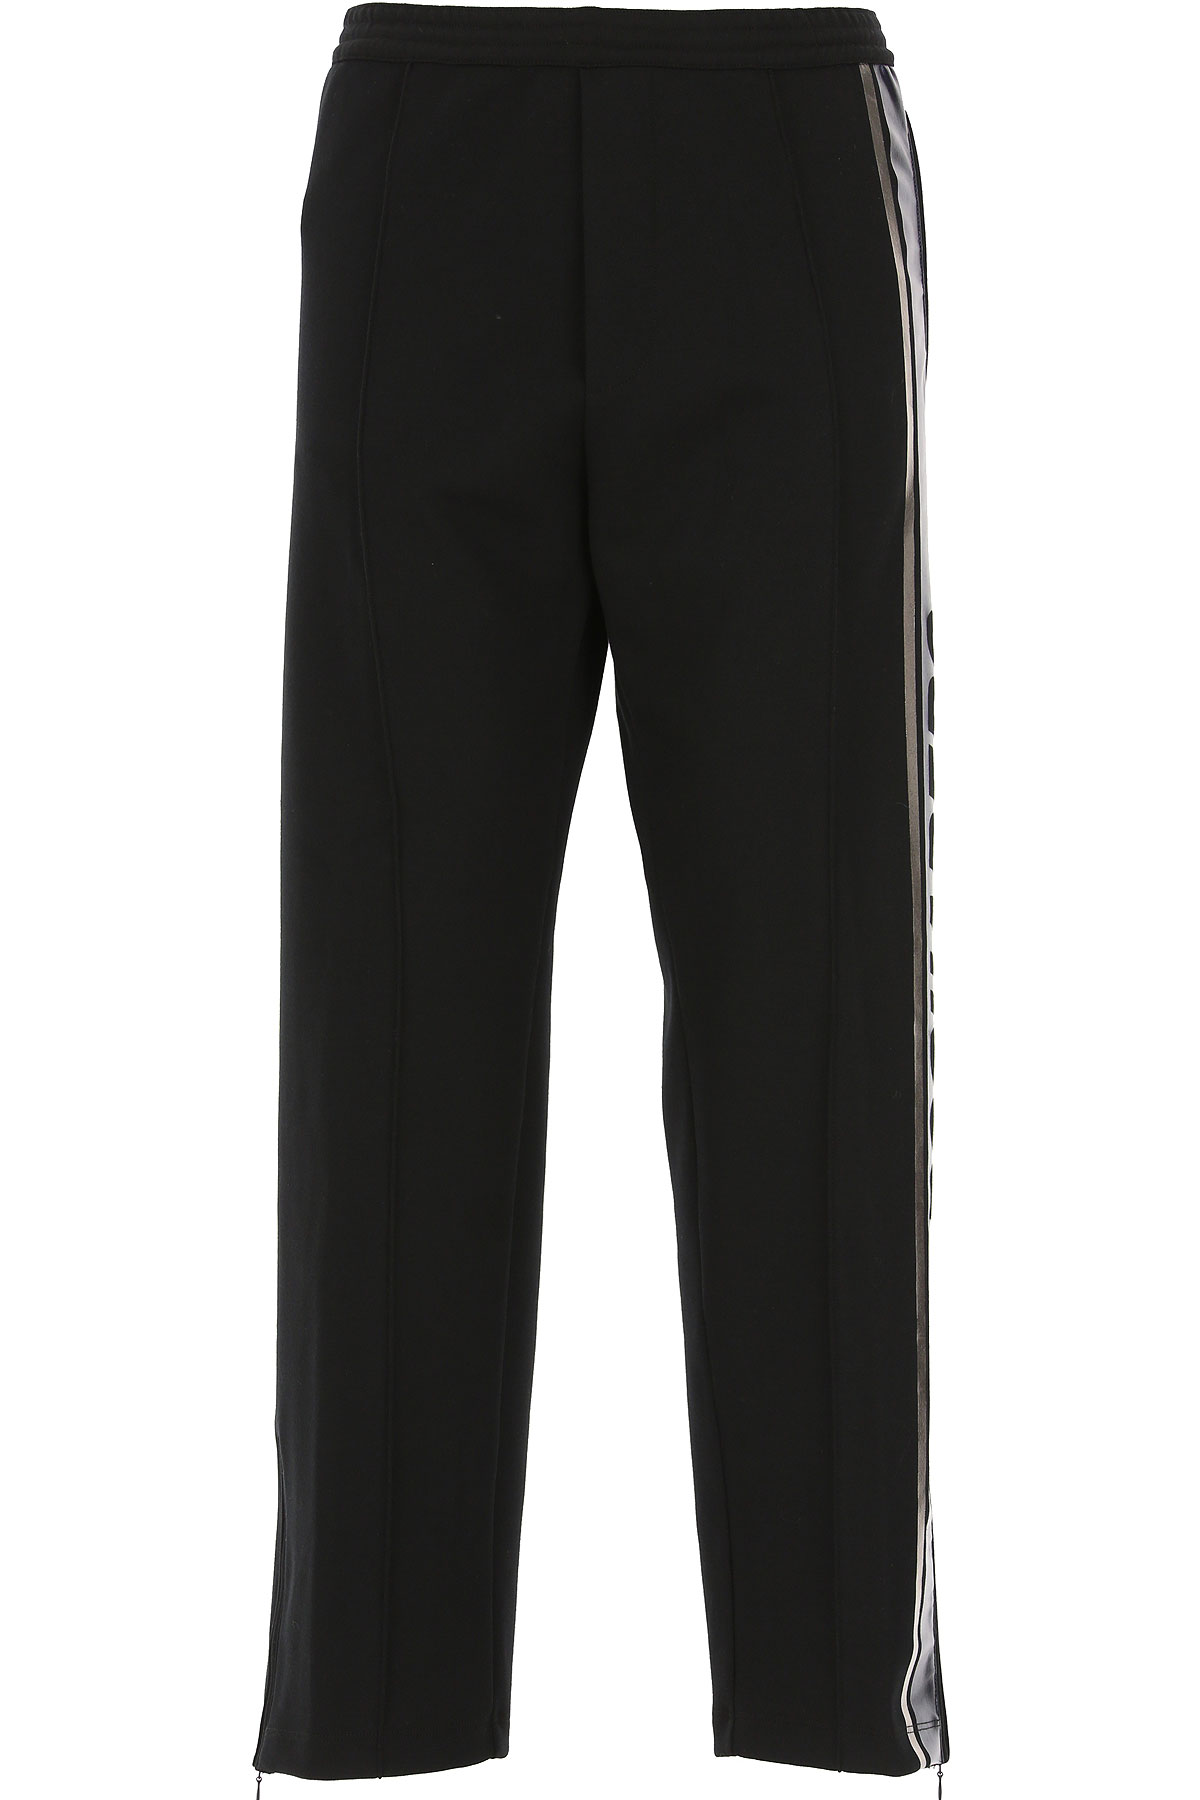 Dsquared2 Men's Sportswear for Gym Workouts and Running On Sale in Outlet, Black, Cotton, 2019, L S